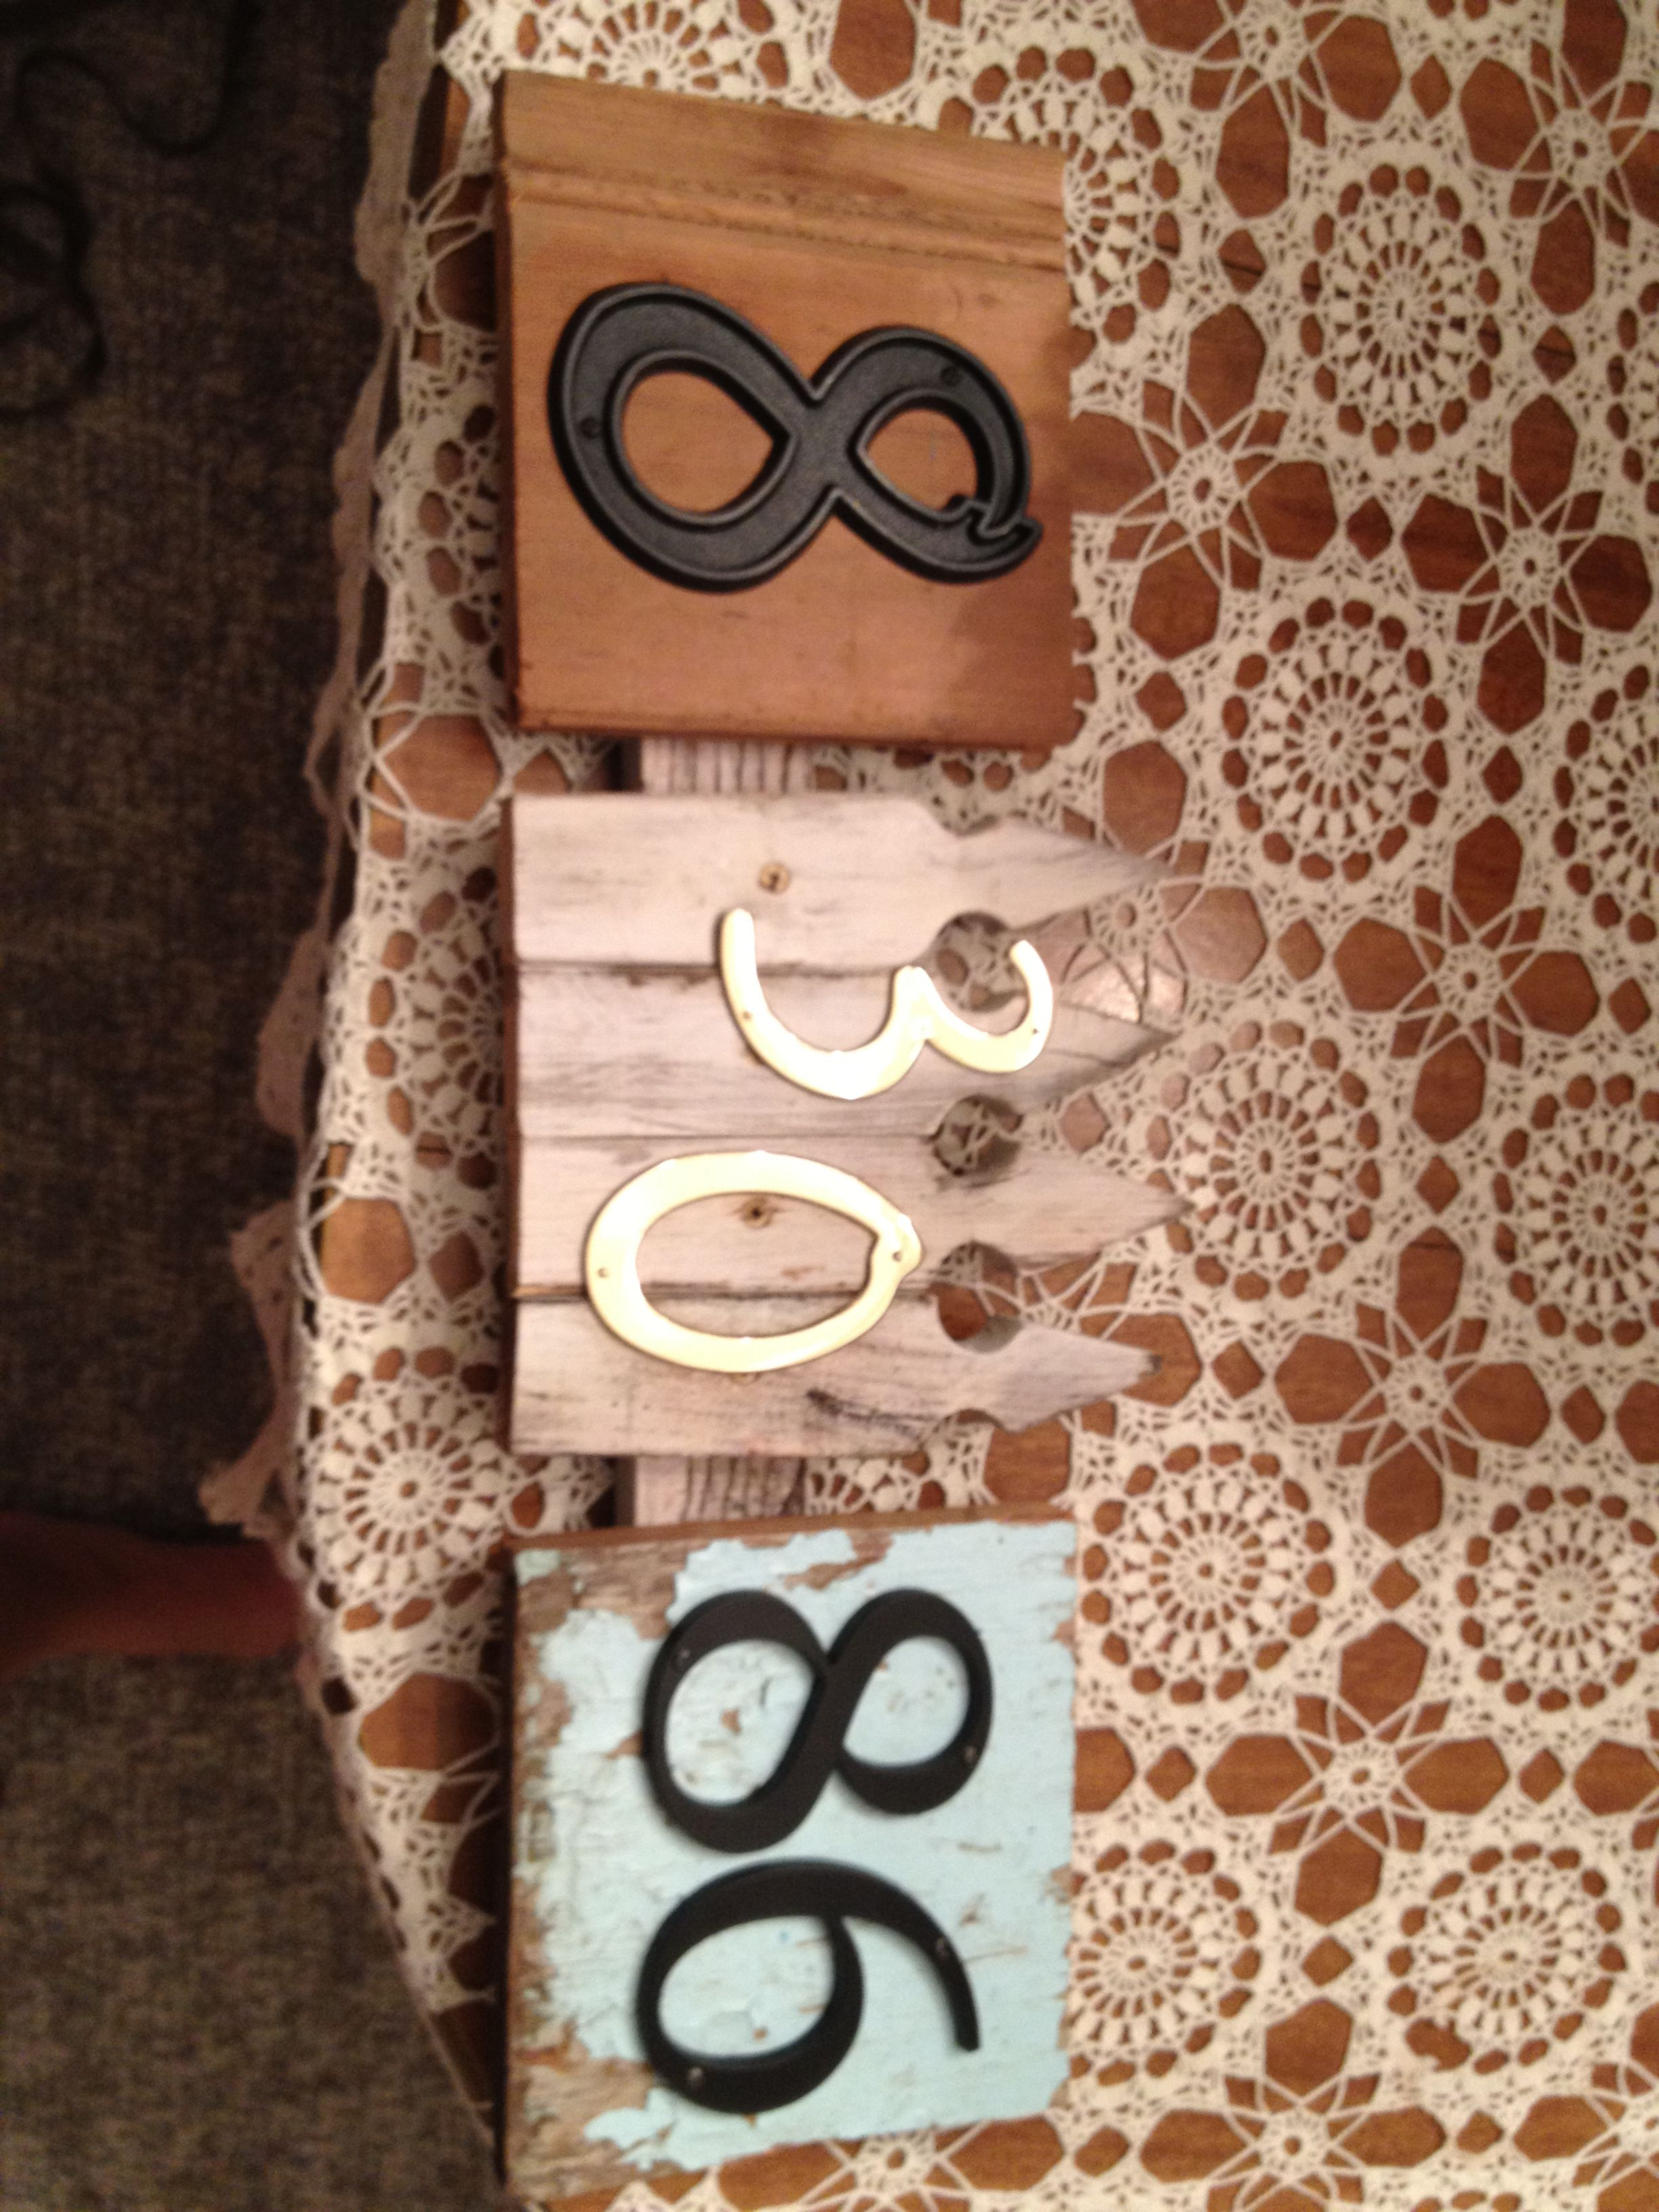 awesome wedding gift idea with couple's wedding date ...